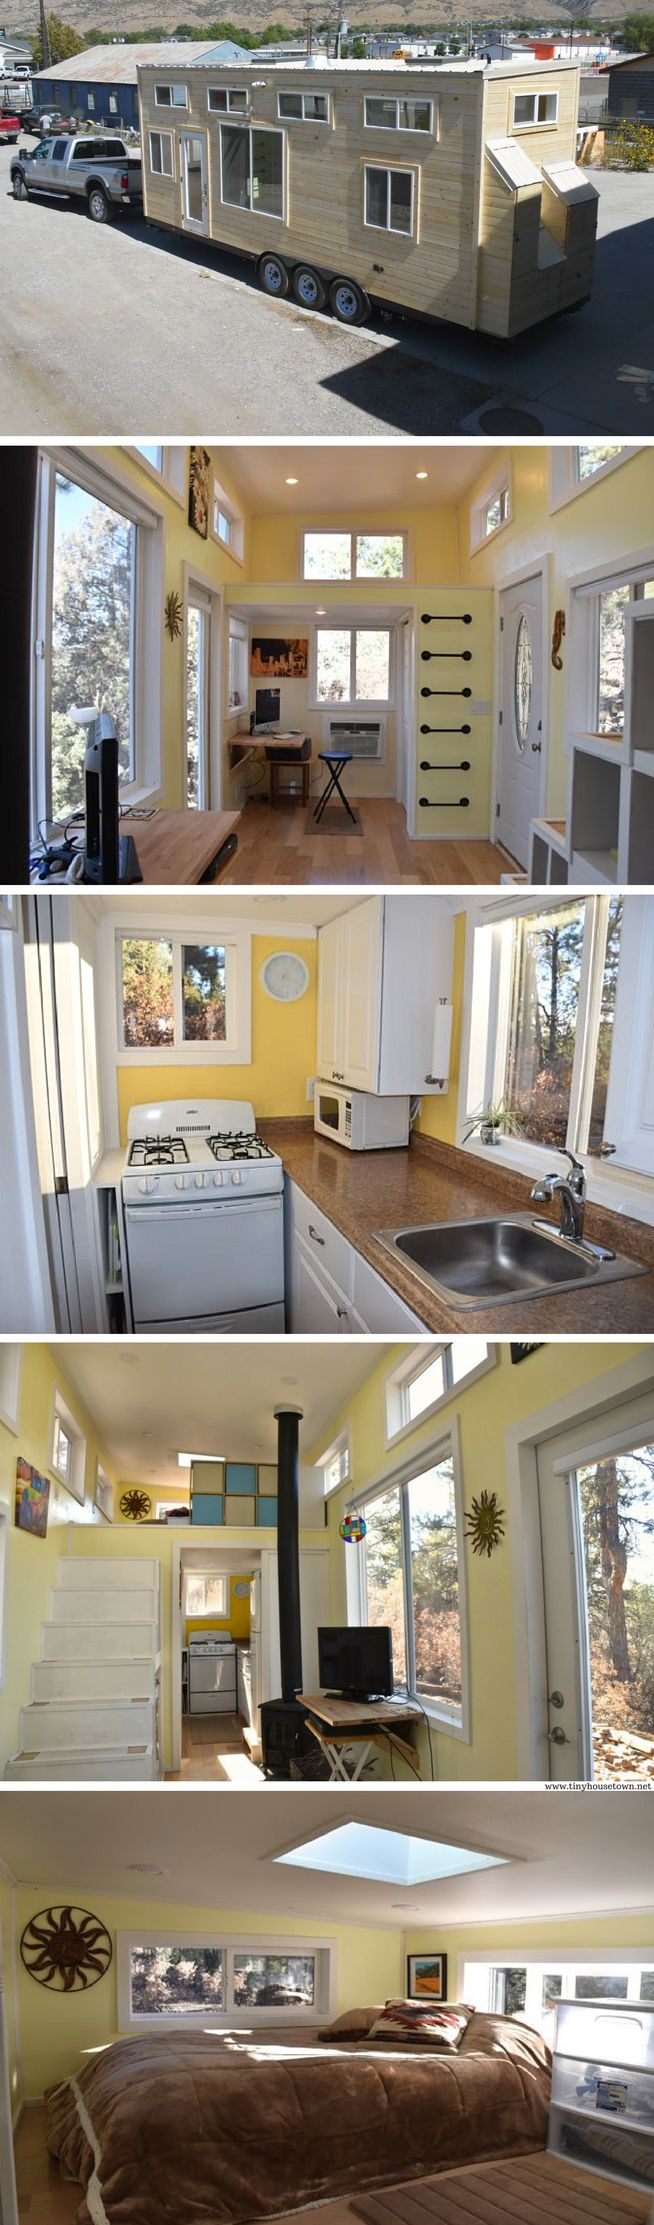 best 25 new homes ideas on pinterest home design furniture a 310 sq ft tiny house designed and built by upper valley tiny homes and currently available for sale in durango colorado